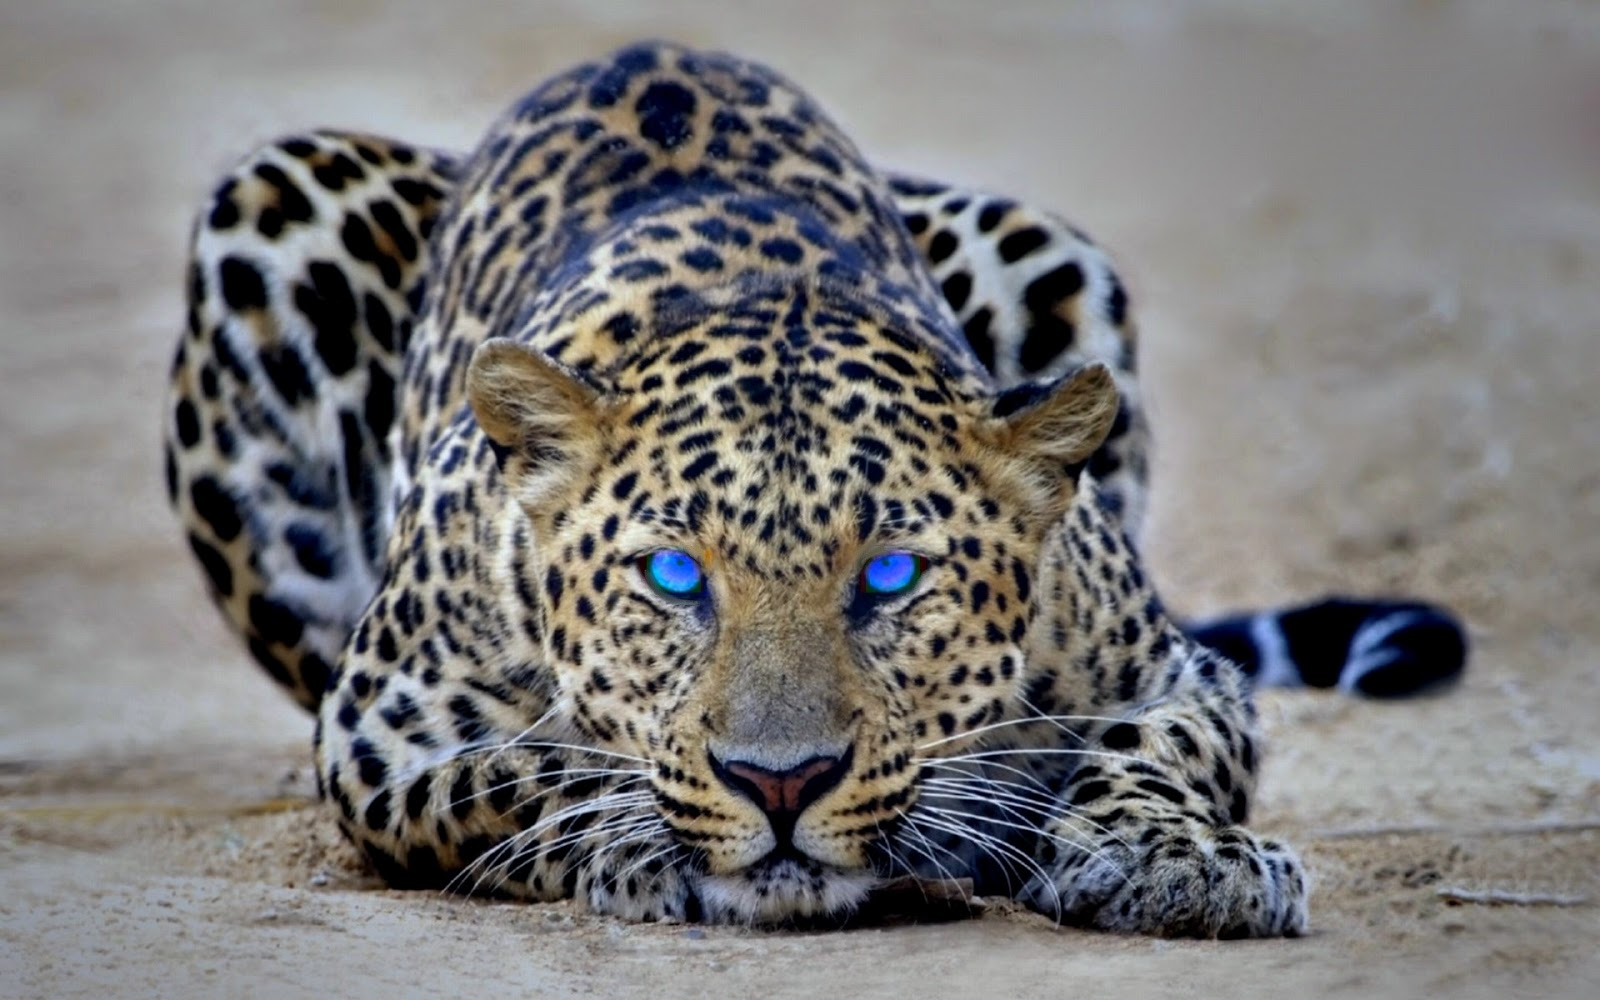 Cheetah HD Wallpapers | Latest HD Wallpapers